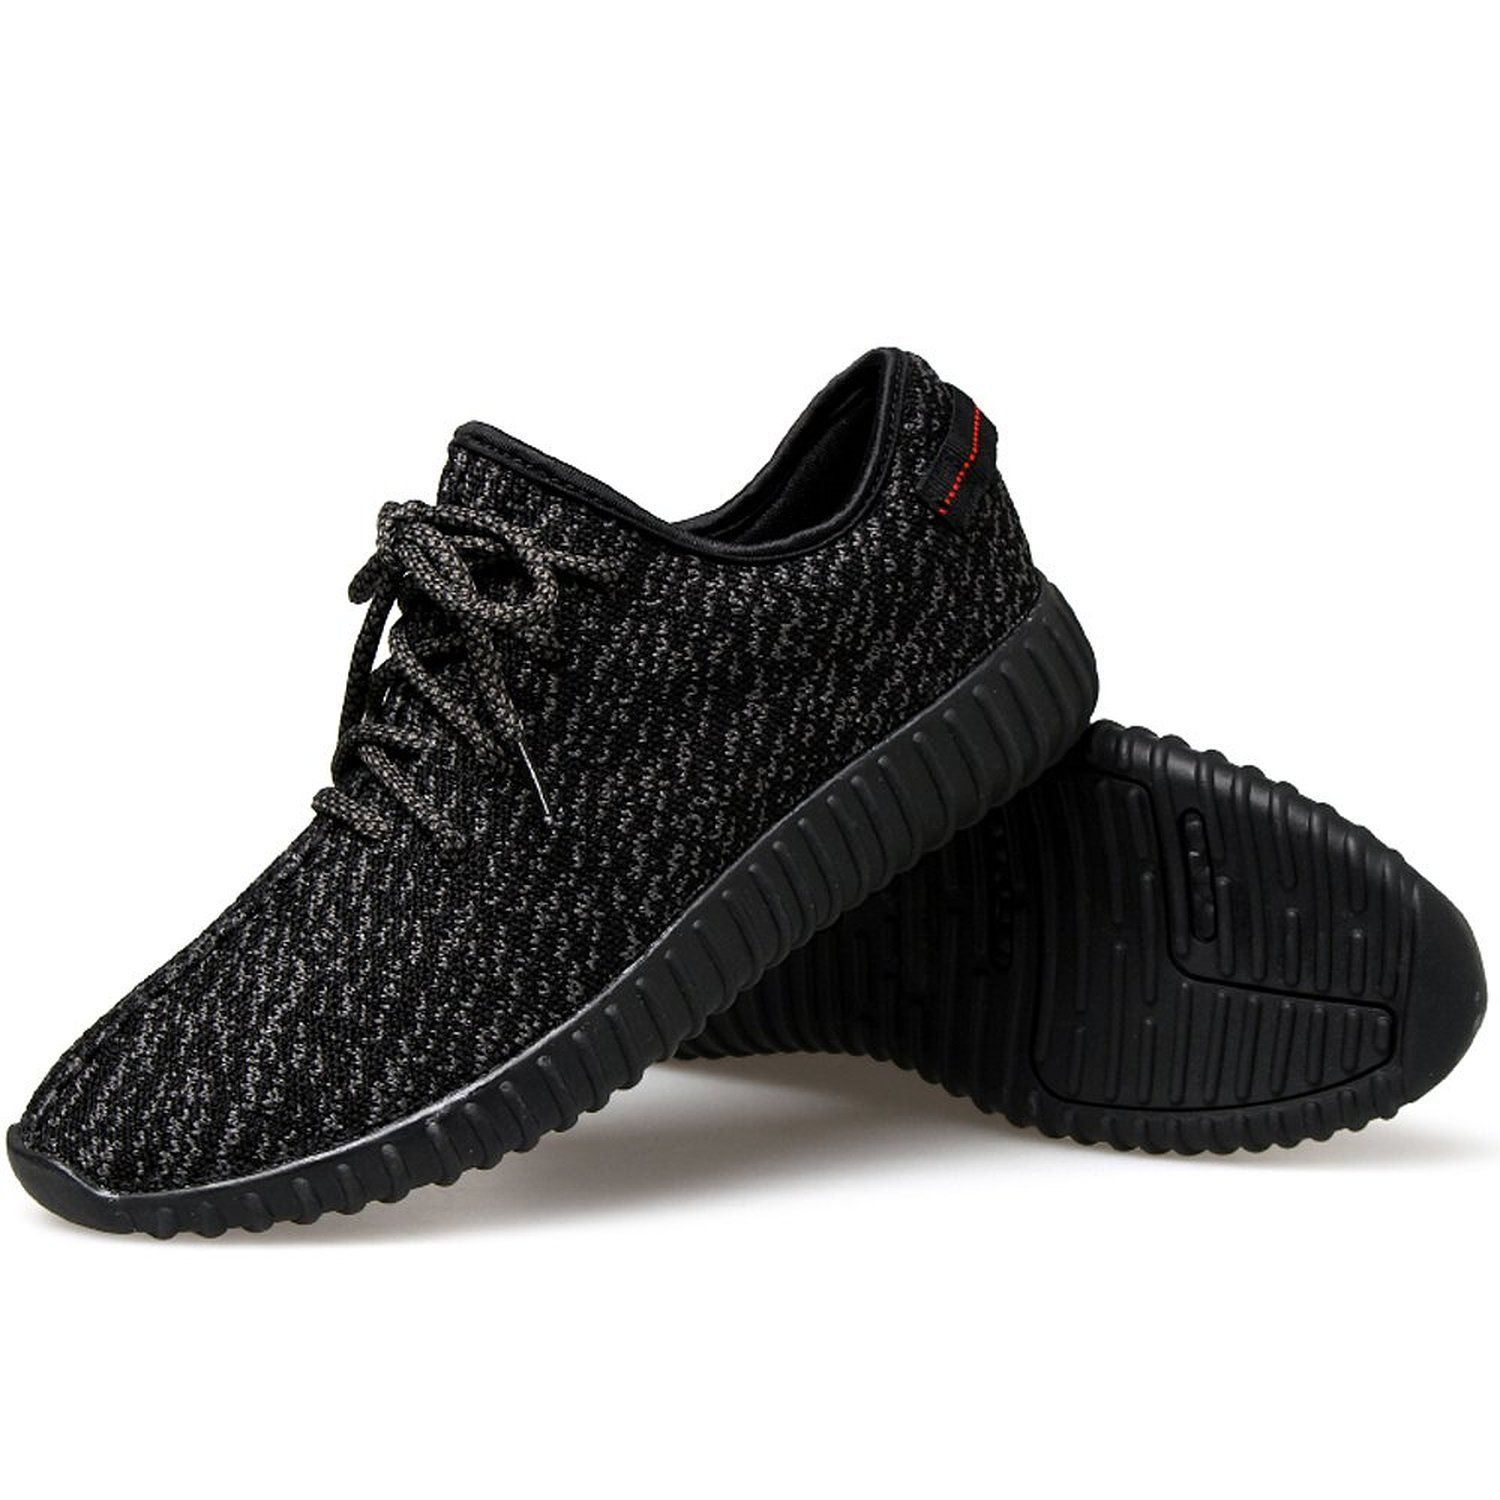 Shoes Mens Casual Shoes Outdoor Exercise Sneakers Low-Top Lace-up Shoes Running Shoes (Color : Black Mirror Size : 41)